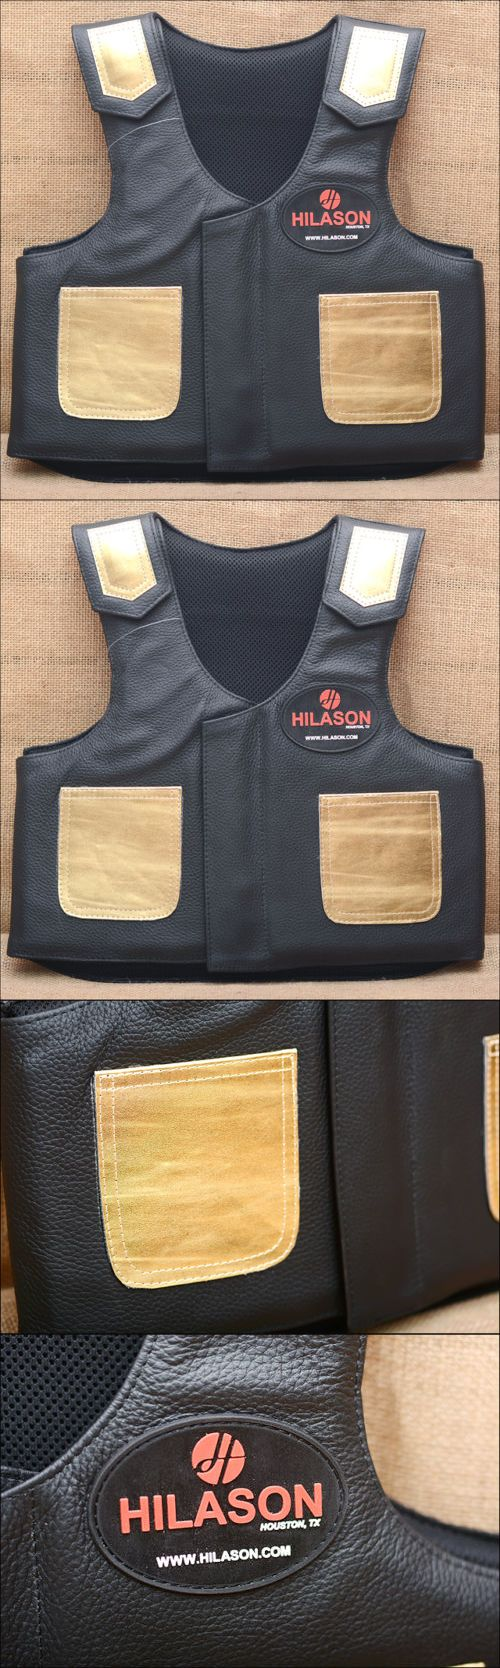 Other Protective Gear 87446: Pv201ya Hilason Kids Junior Youth Horse Riding Pro Rodeo Leather Protective Vest -> BUY IT NOW ONLY: $84.99 on eBay!